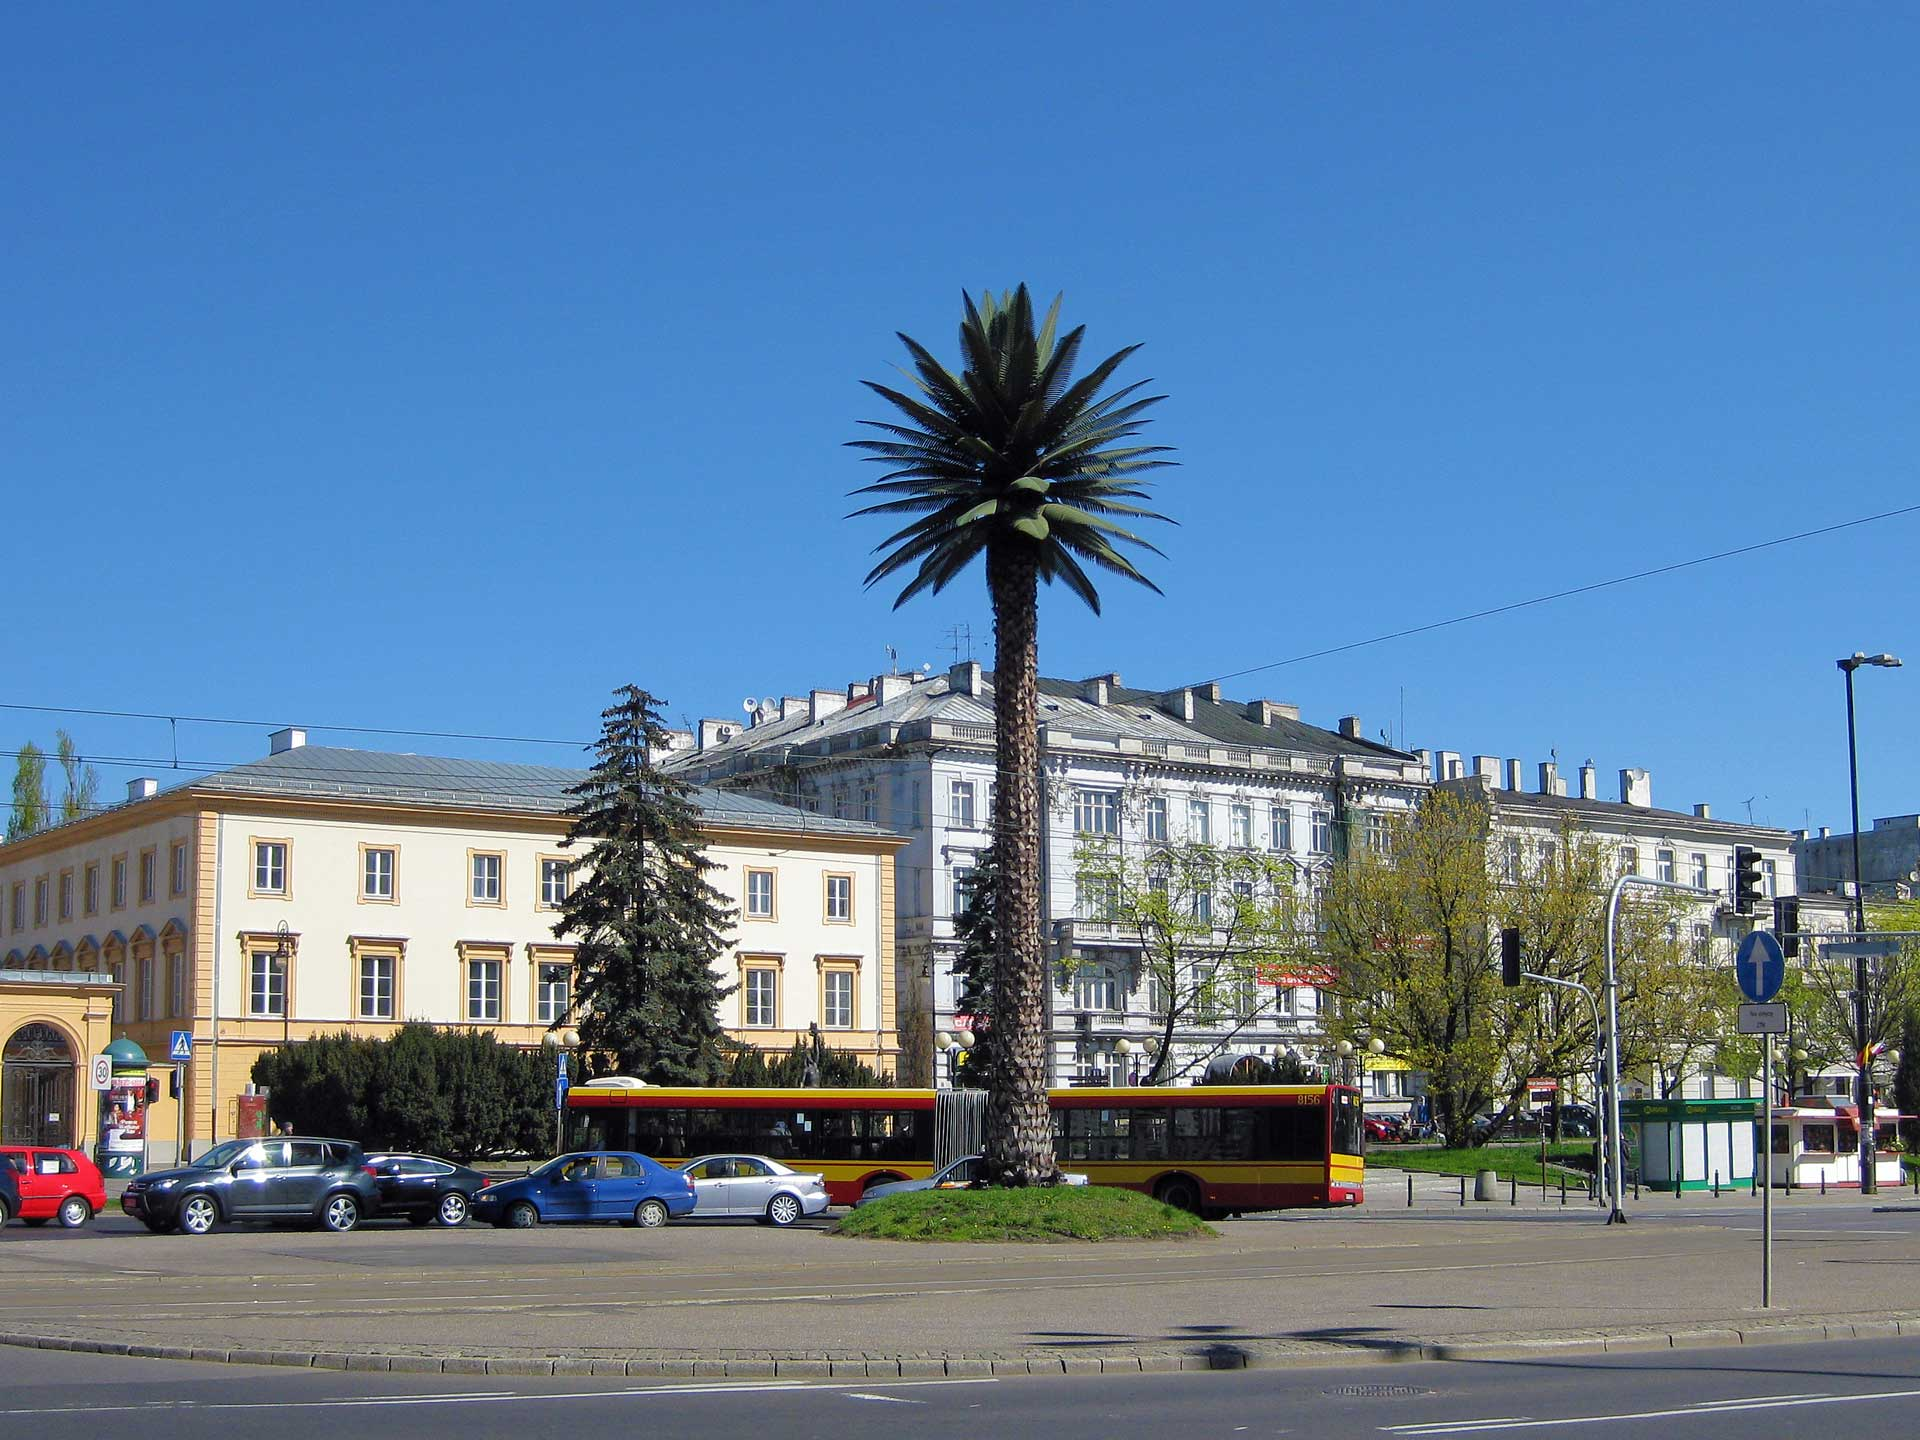 warsaw-palm-tree-1